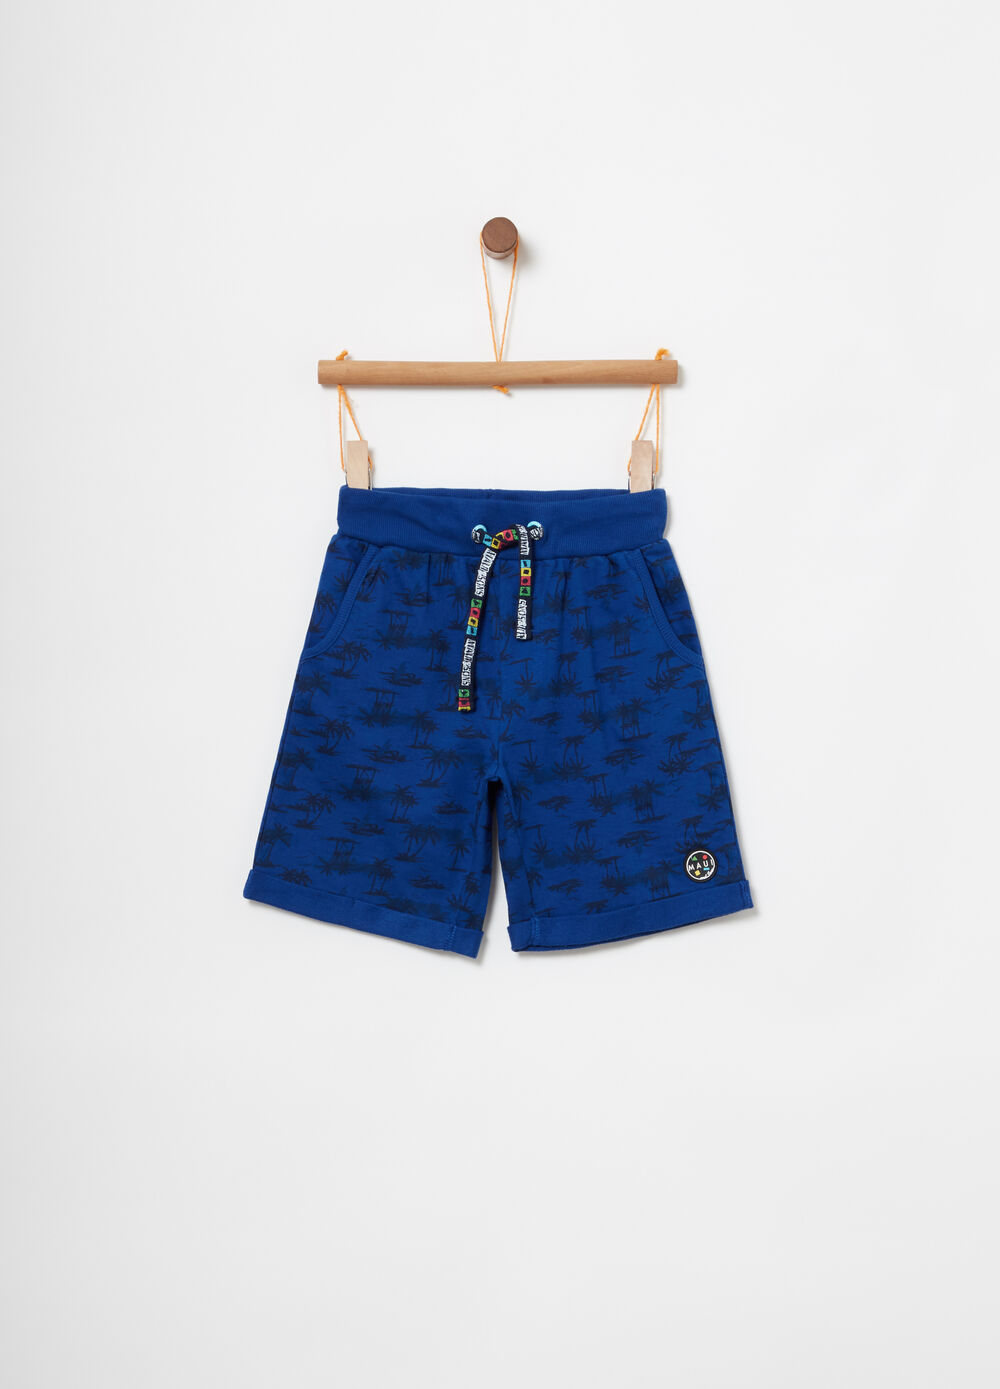 Patterned Bermudas with drawstring by Maui and Sons